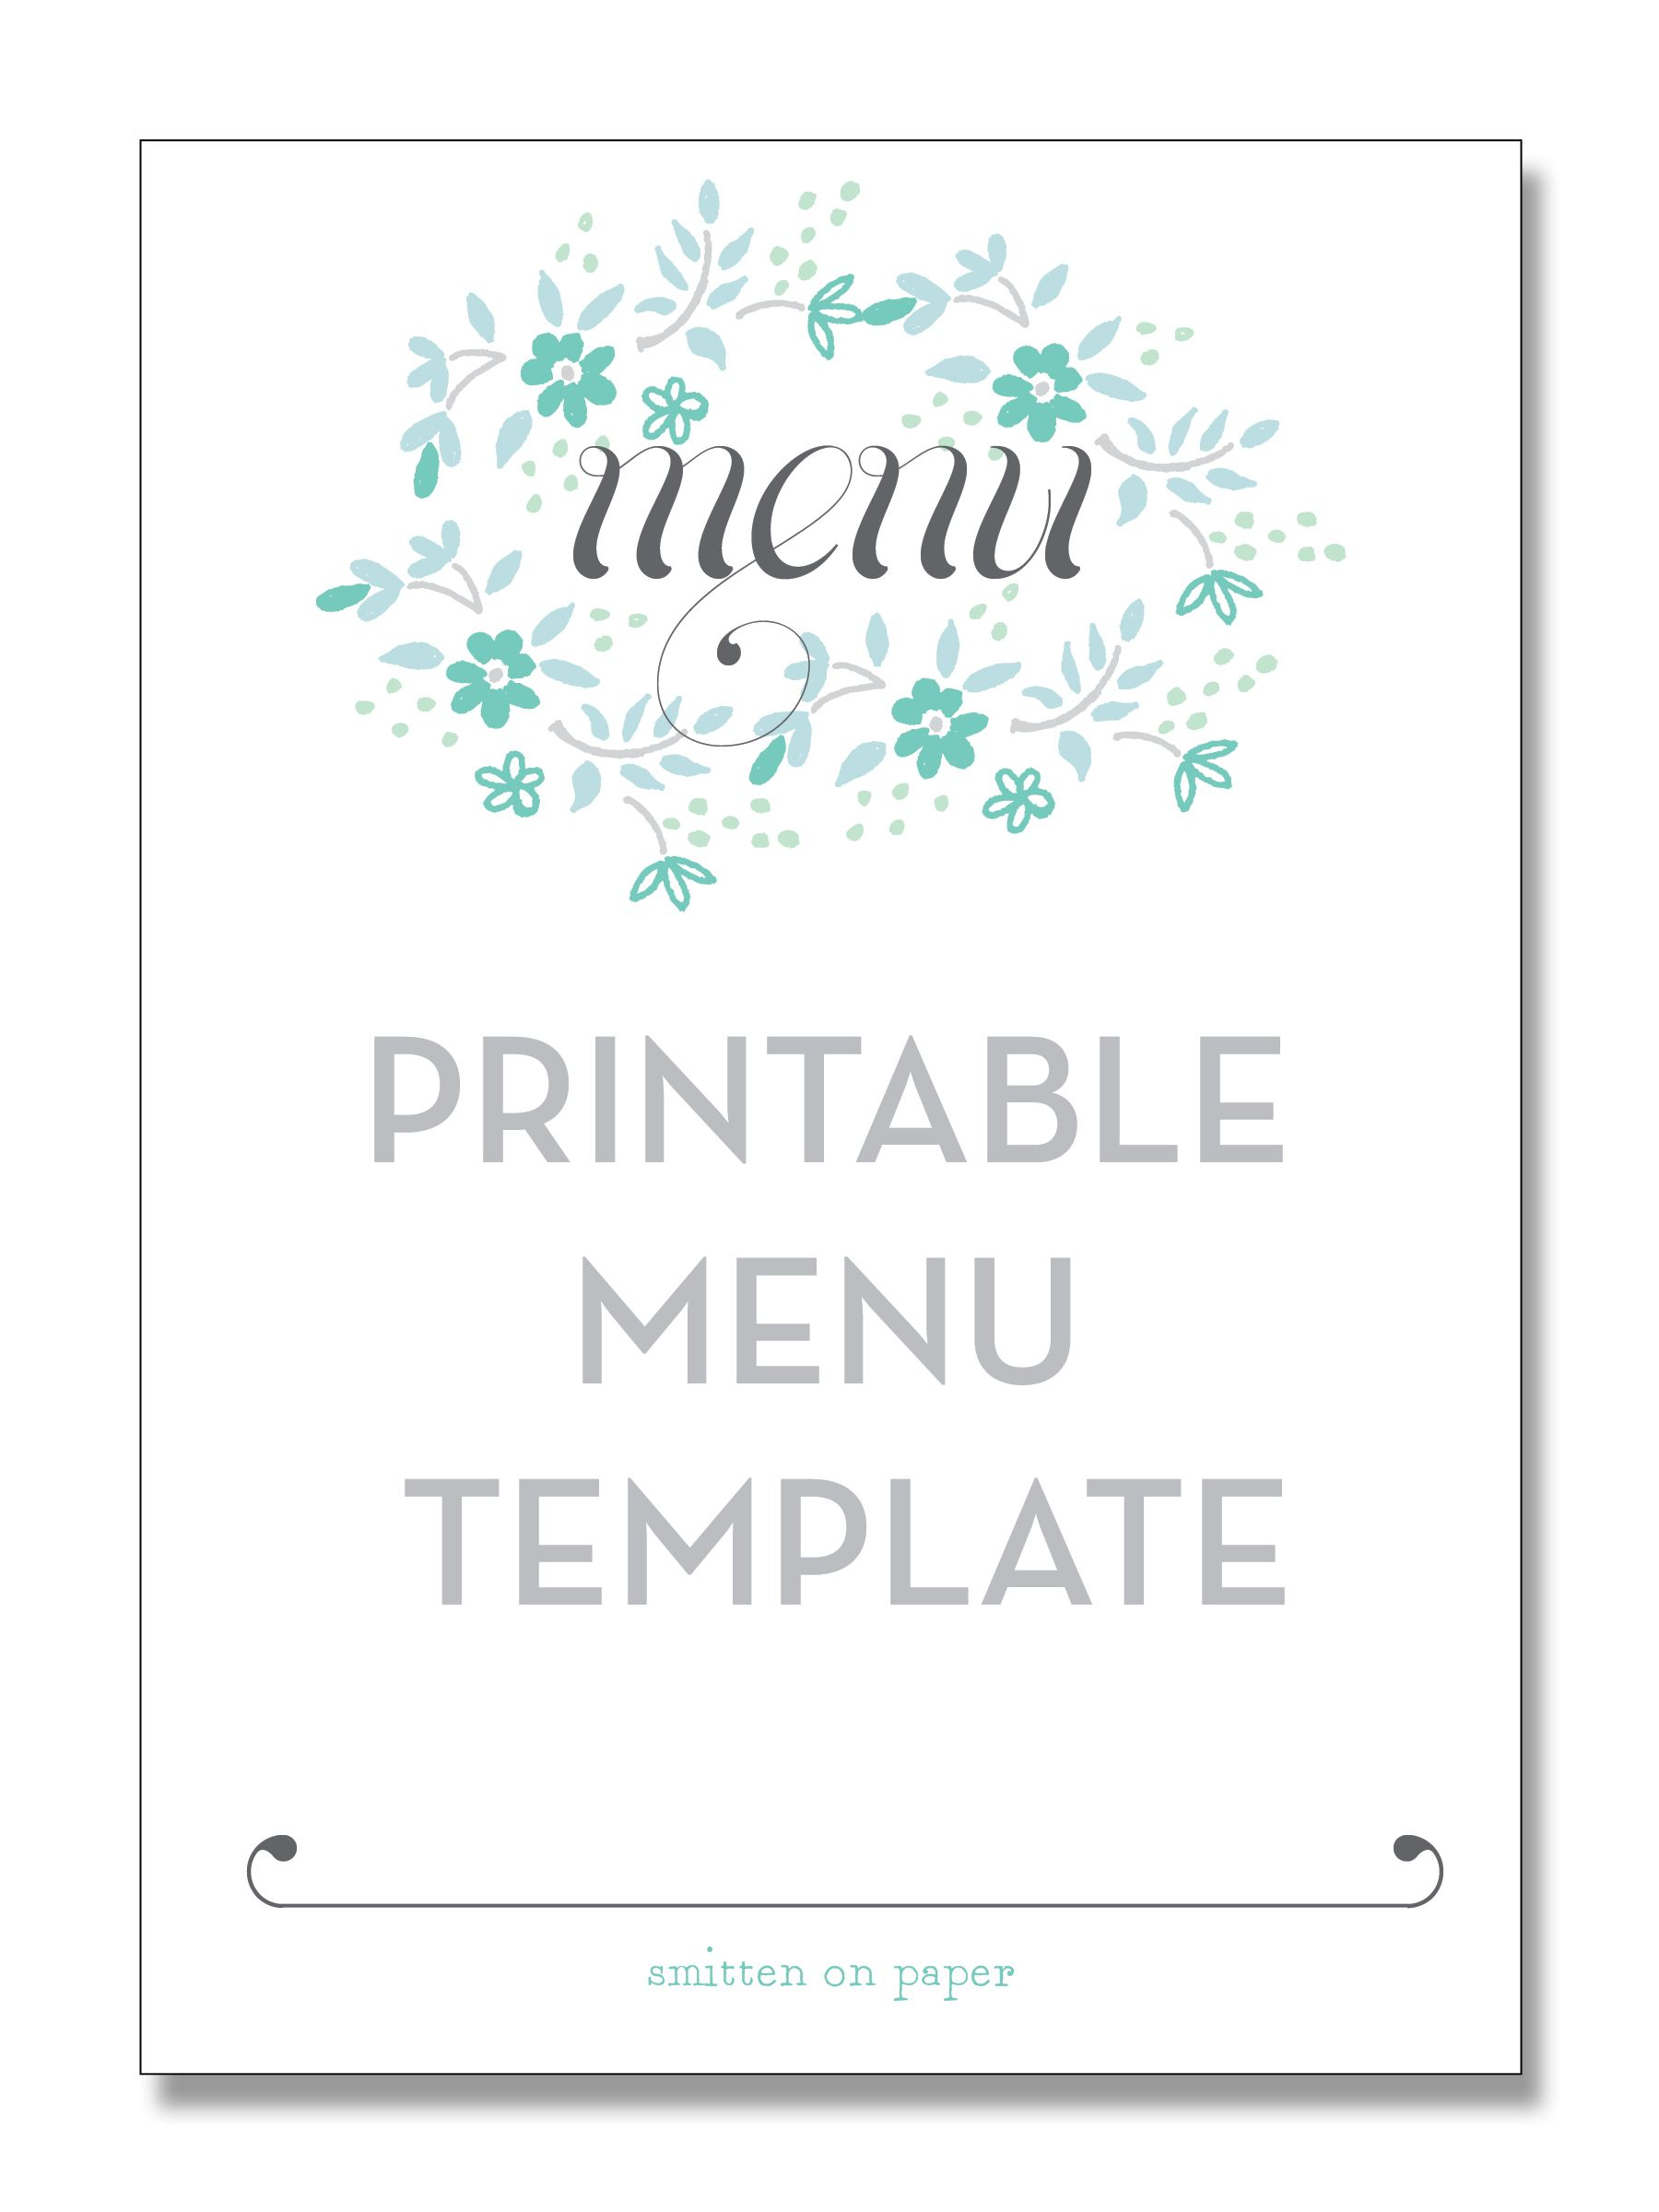 photograph about Free Printable Menu Templates named Freebie Friday: Printable Menu Printables No cost printable